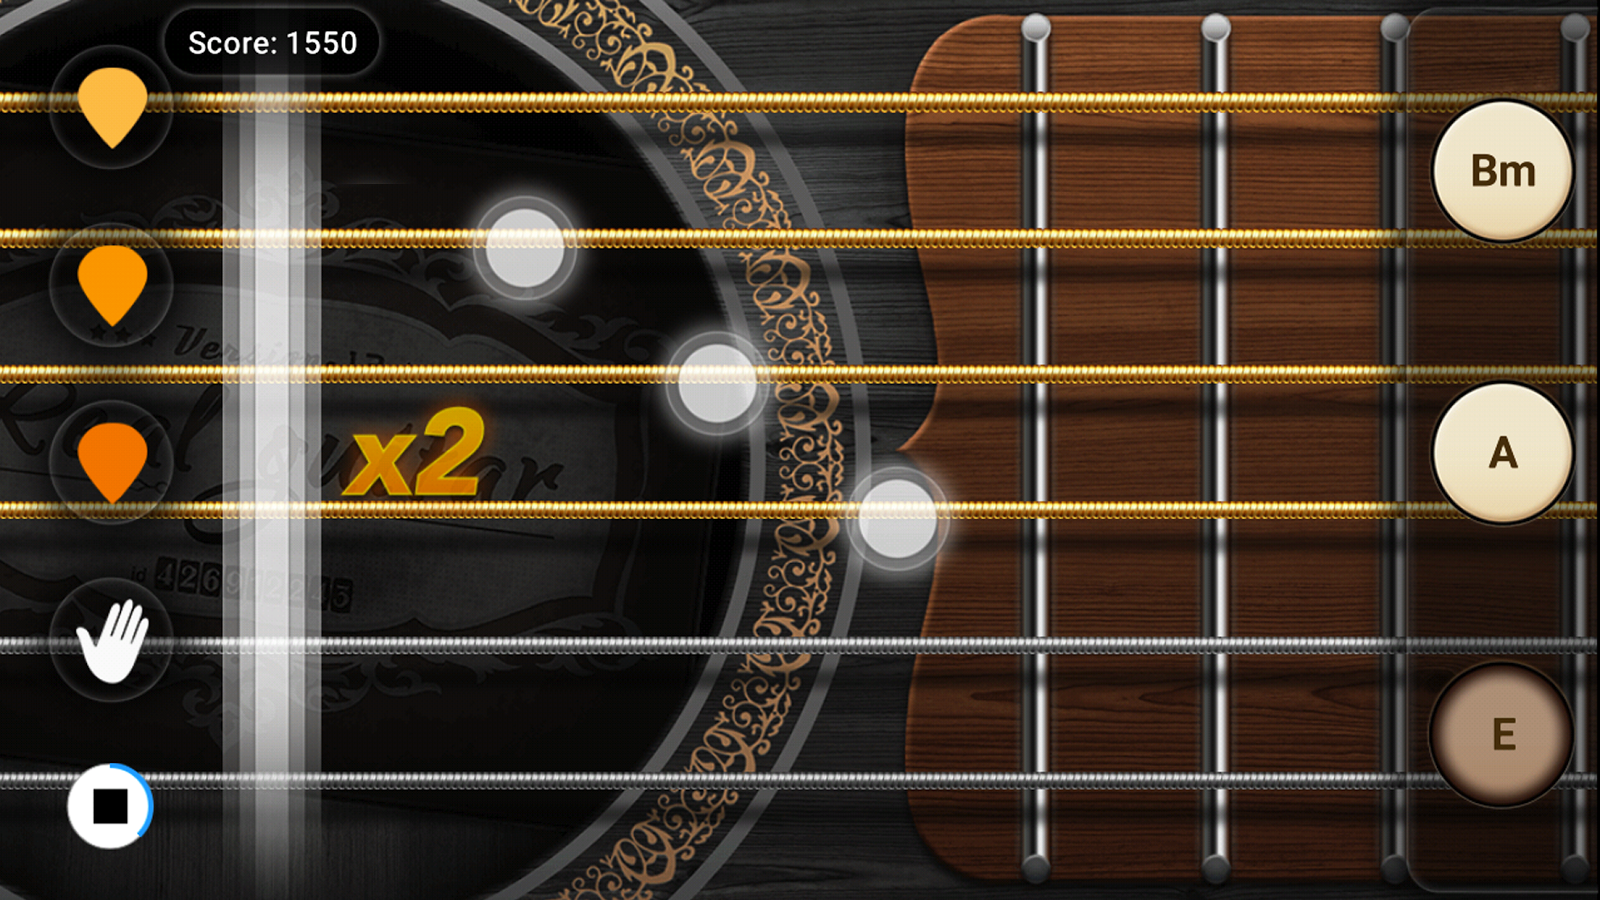 Real Guitar Free Chords Tabs Simulator Games Apk Download